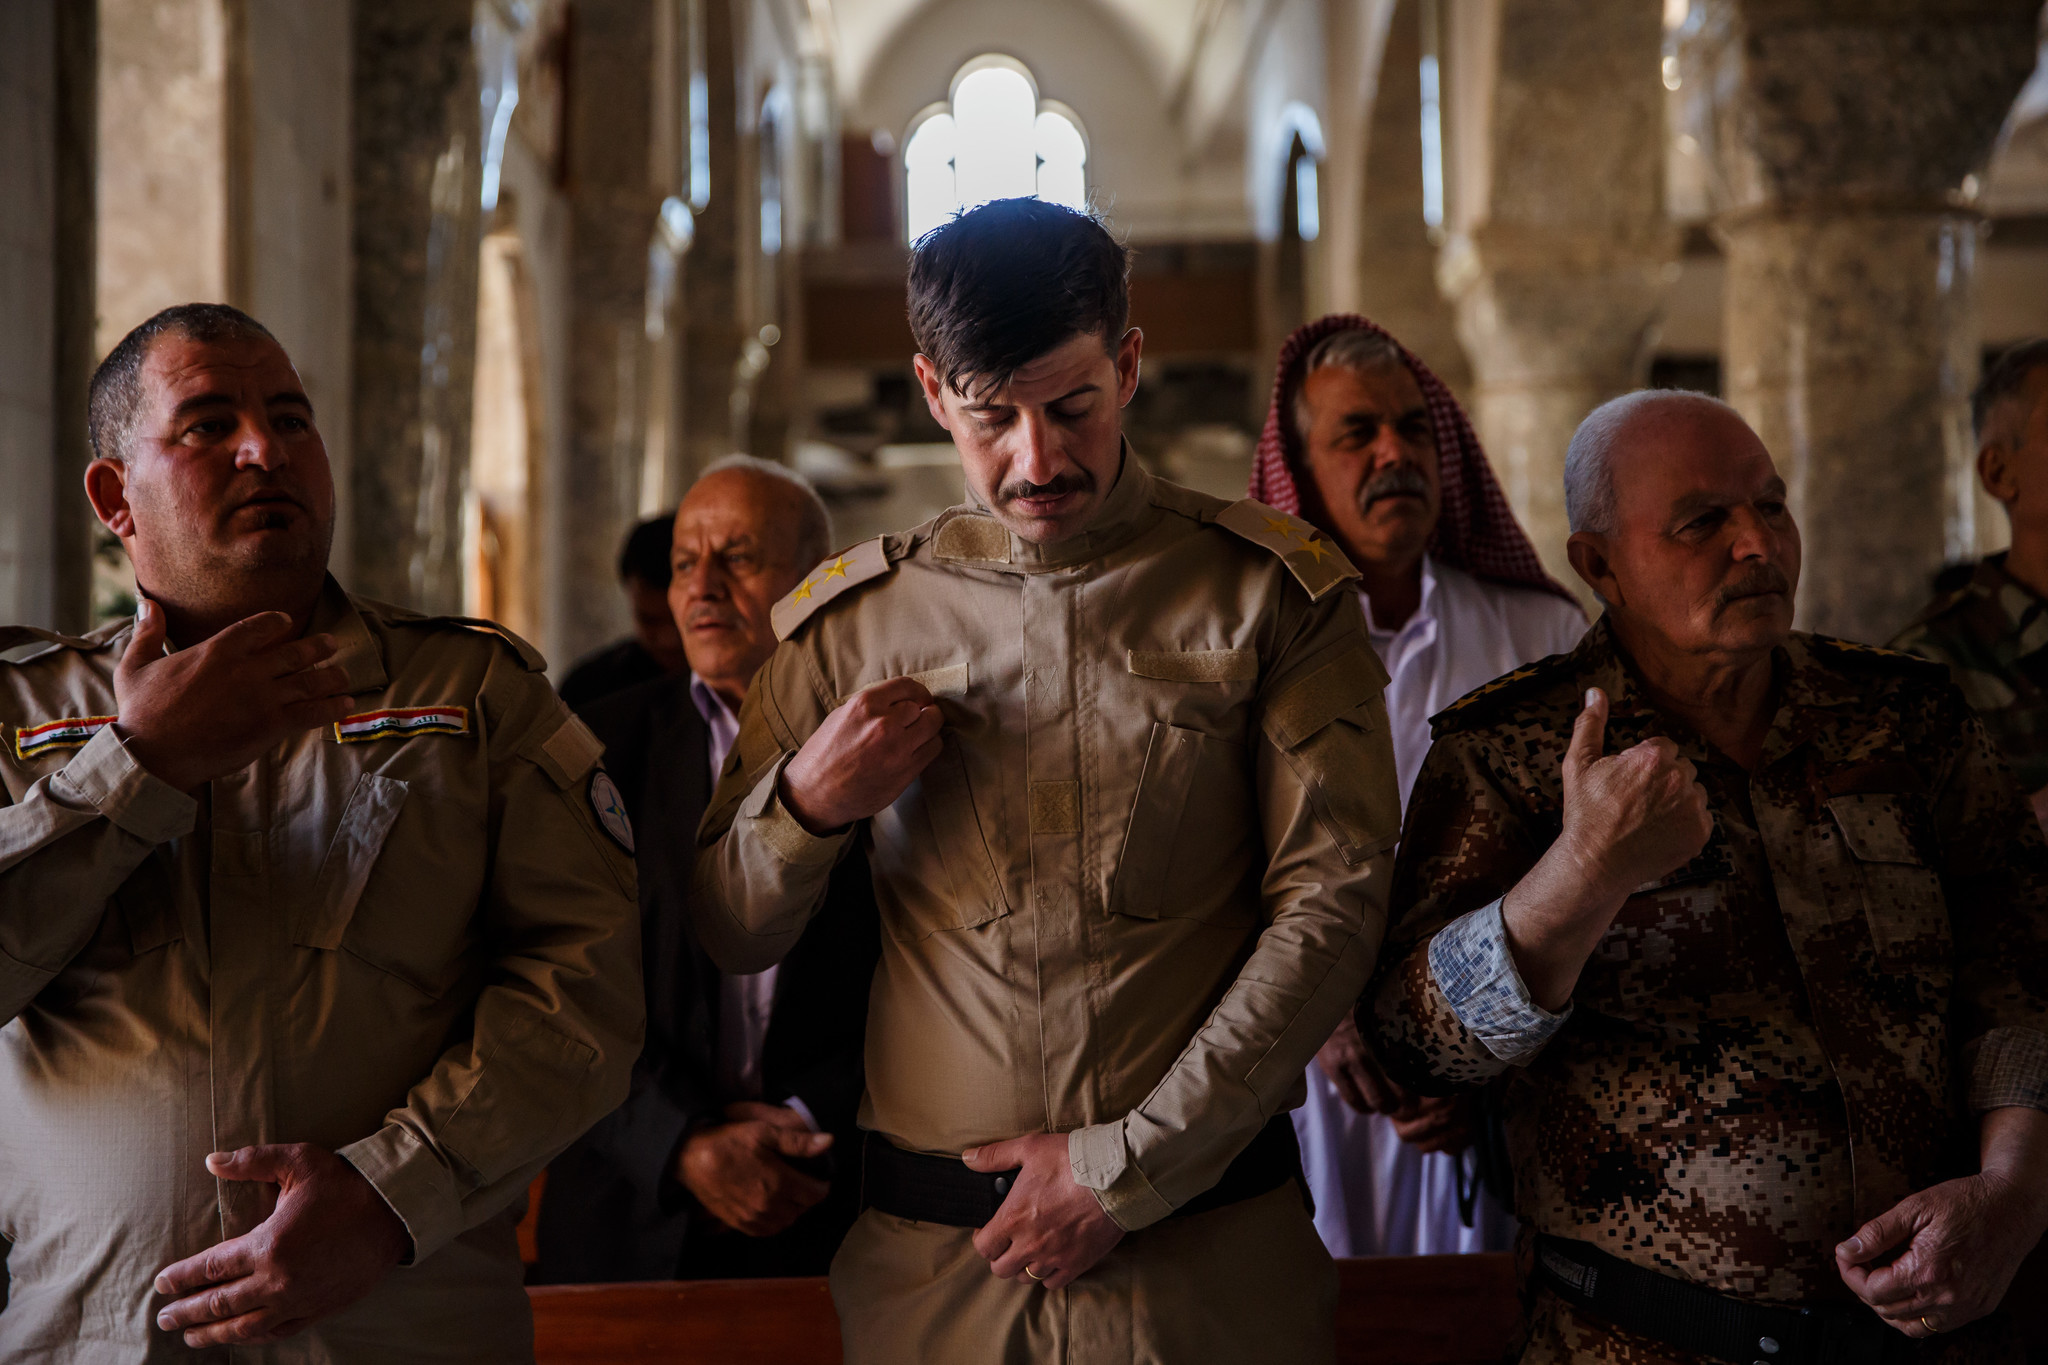 Soldiers make the sign of the cross during Easter Mass at the Mar Youhanna Church, also known as St. John Church, in Iraq.